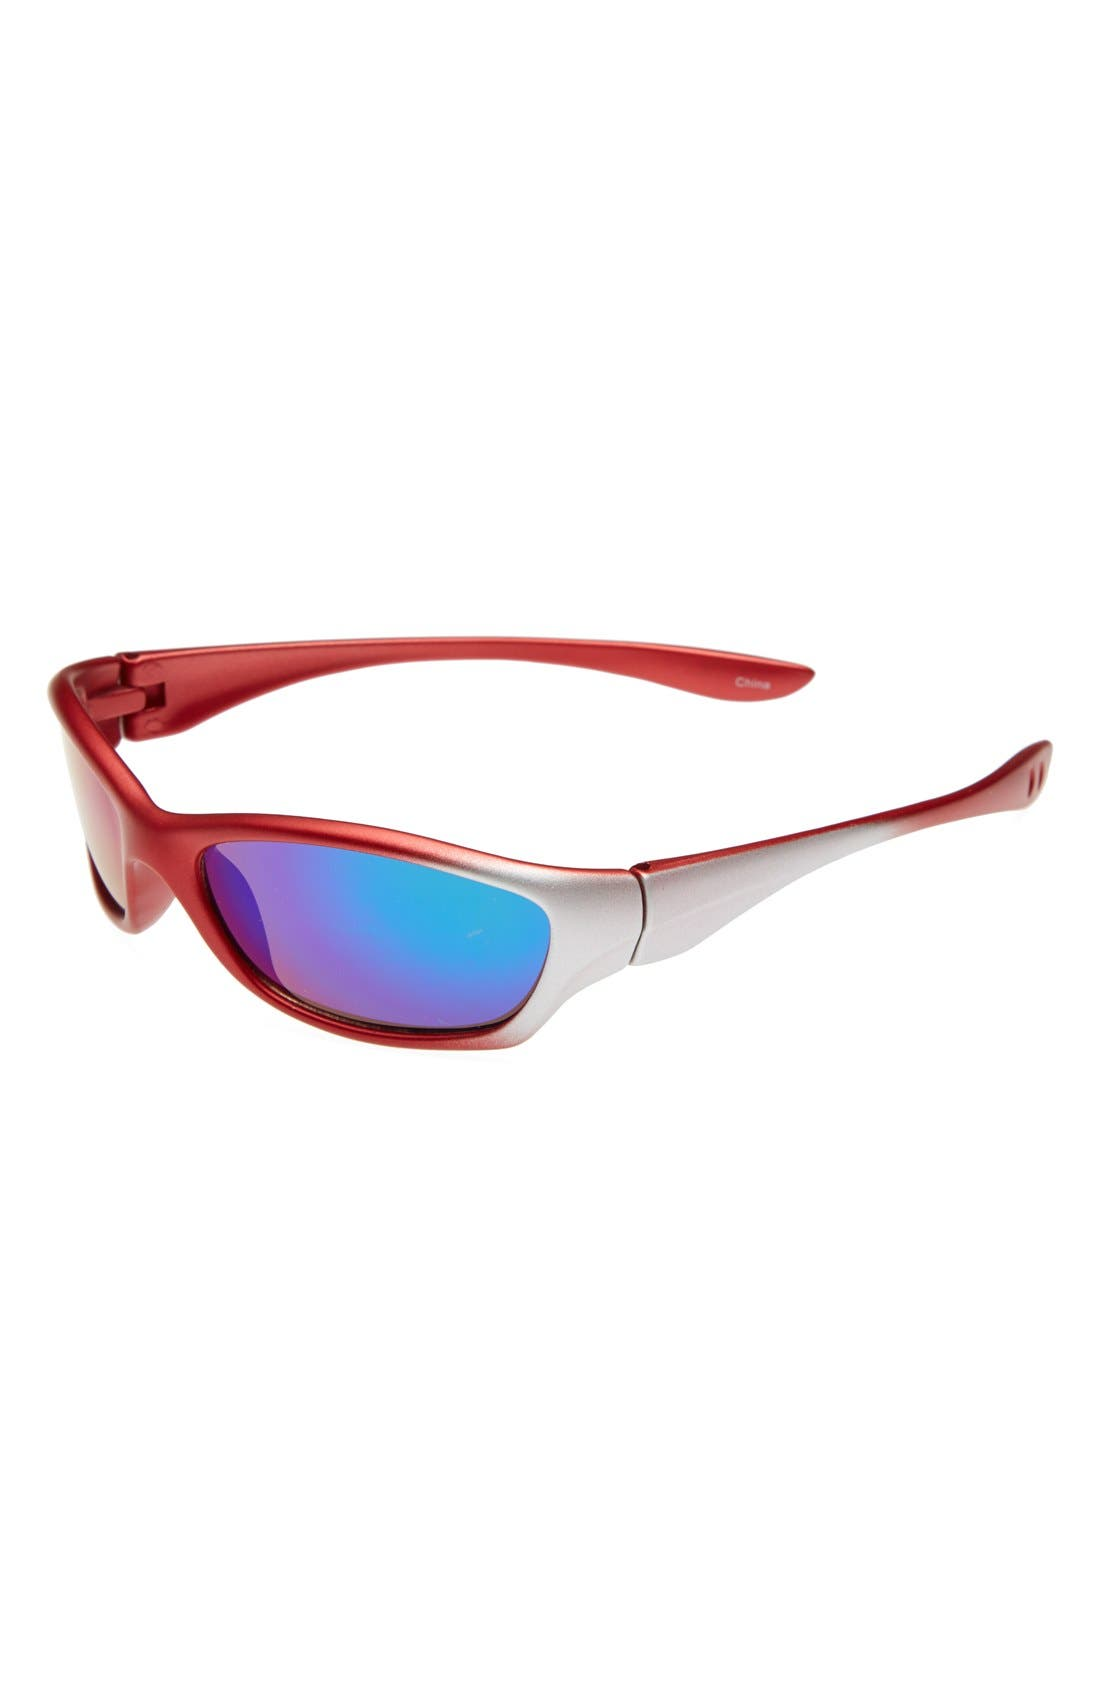 Main Image - Icon Eyewear 'Jimmy' Sunglasses (Boys)